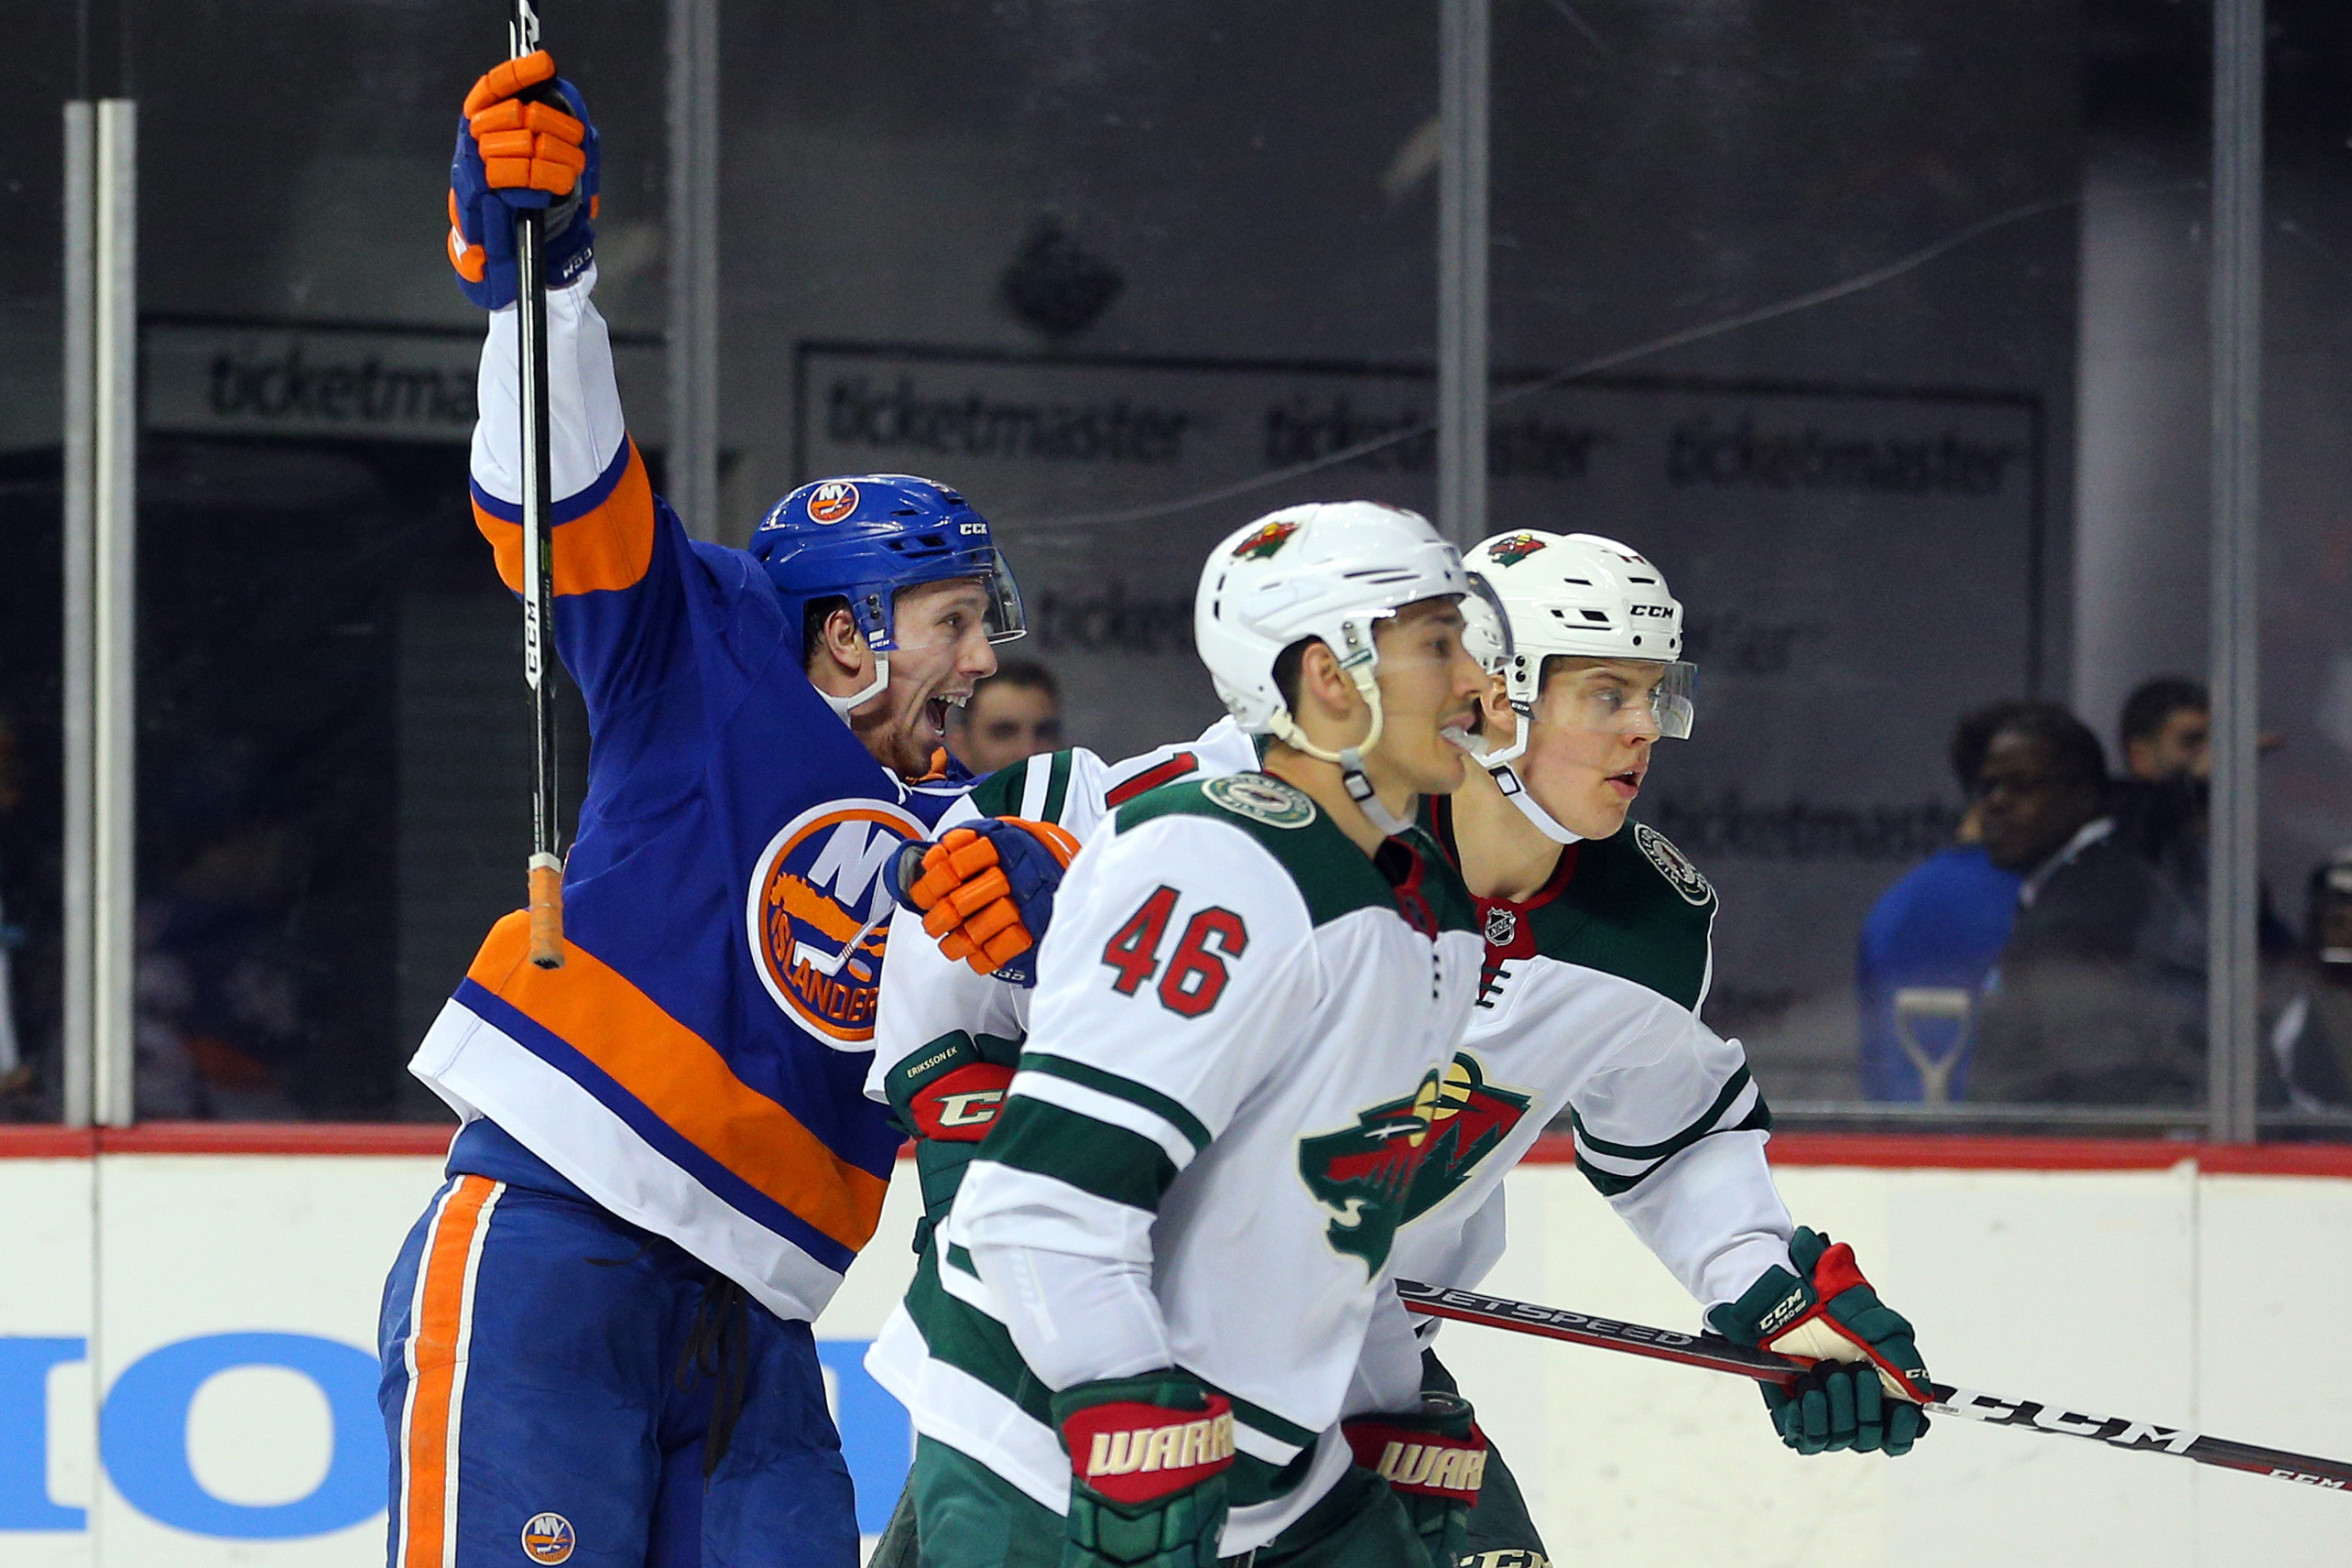 Feb 19, 2018; Brooklyn, NY, USA; New York Islanders center Tanner Fritz (56) reacts after scoring a goal against the Minnesota Wild during the second period at Barclays Center. The goal was the first of his NHL career. Mandatory Credit: Brad Penner-USA TODAY Sports